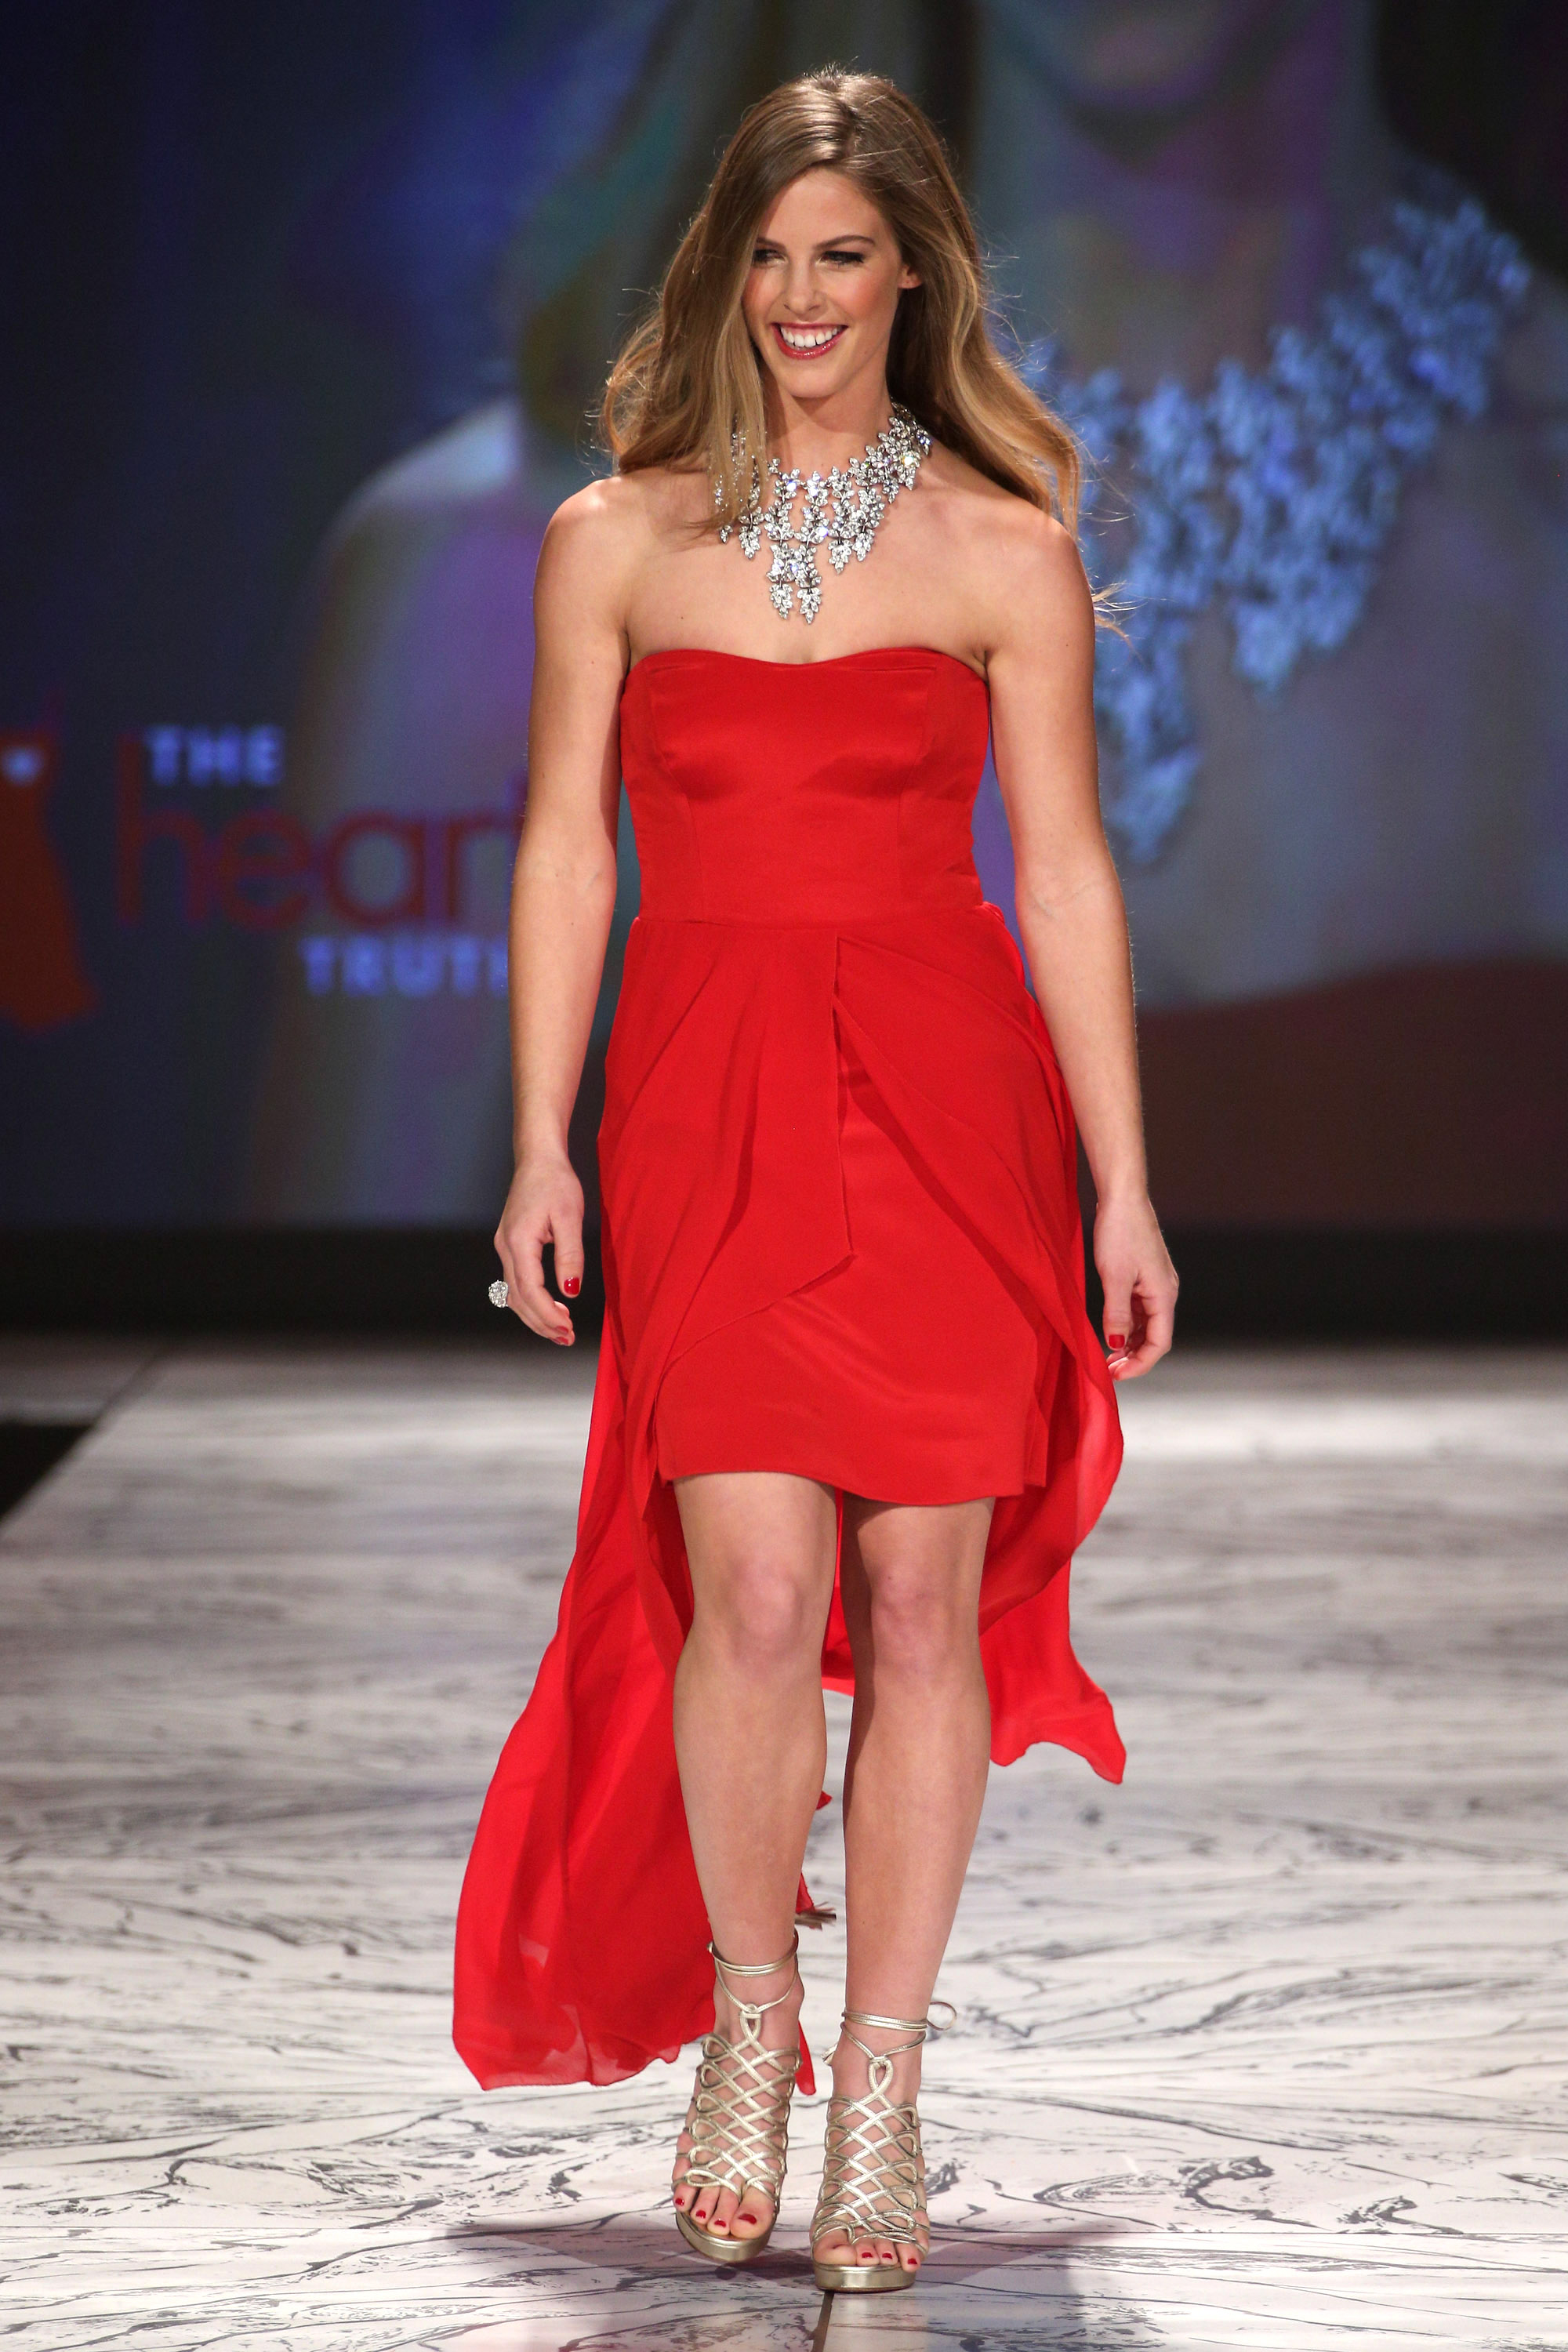 NEW YORK, NY - FEBRUARY 06: Torah Bright wearing Nicole Miller walks the runway at The Heart Truth's Red Dress Collection during Fall 2013 Mercedes-Benz Fashion Week at Hammerstein Ballroom on February 6, 2013 in New York City. (Photo by Thomas Concordia/WireImage)